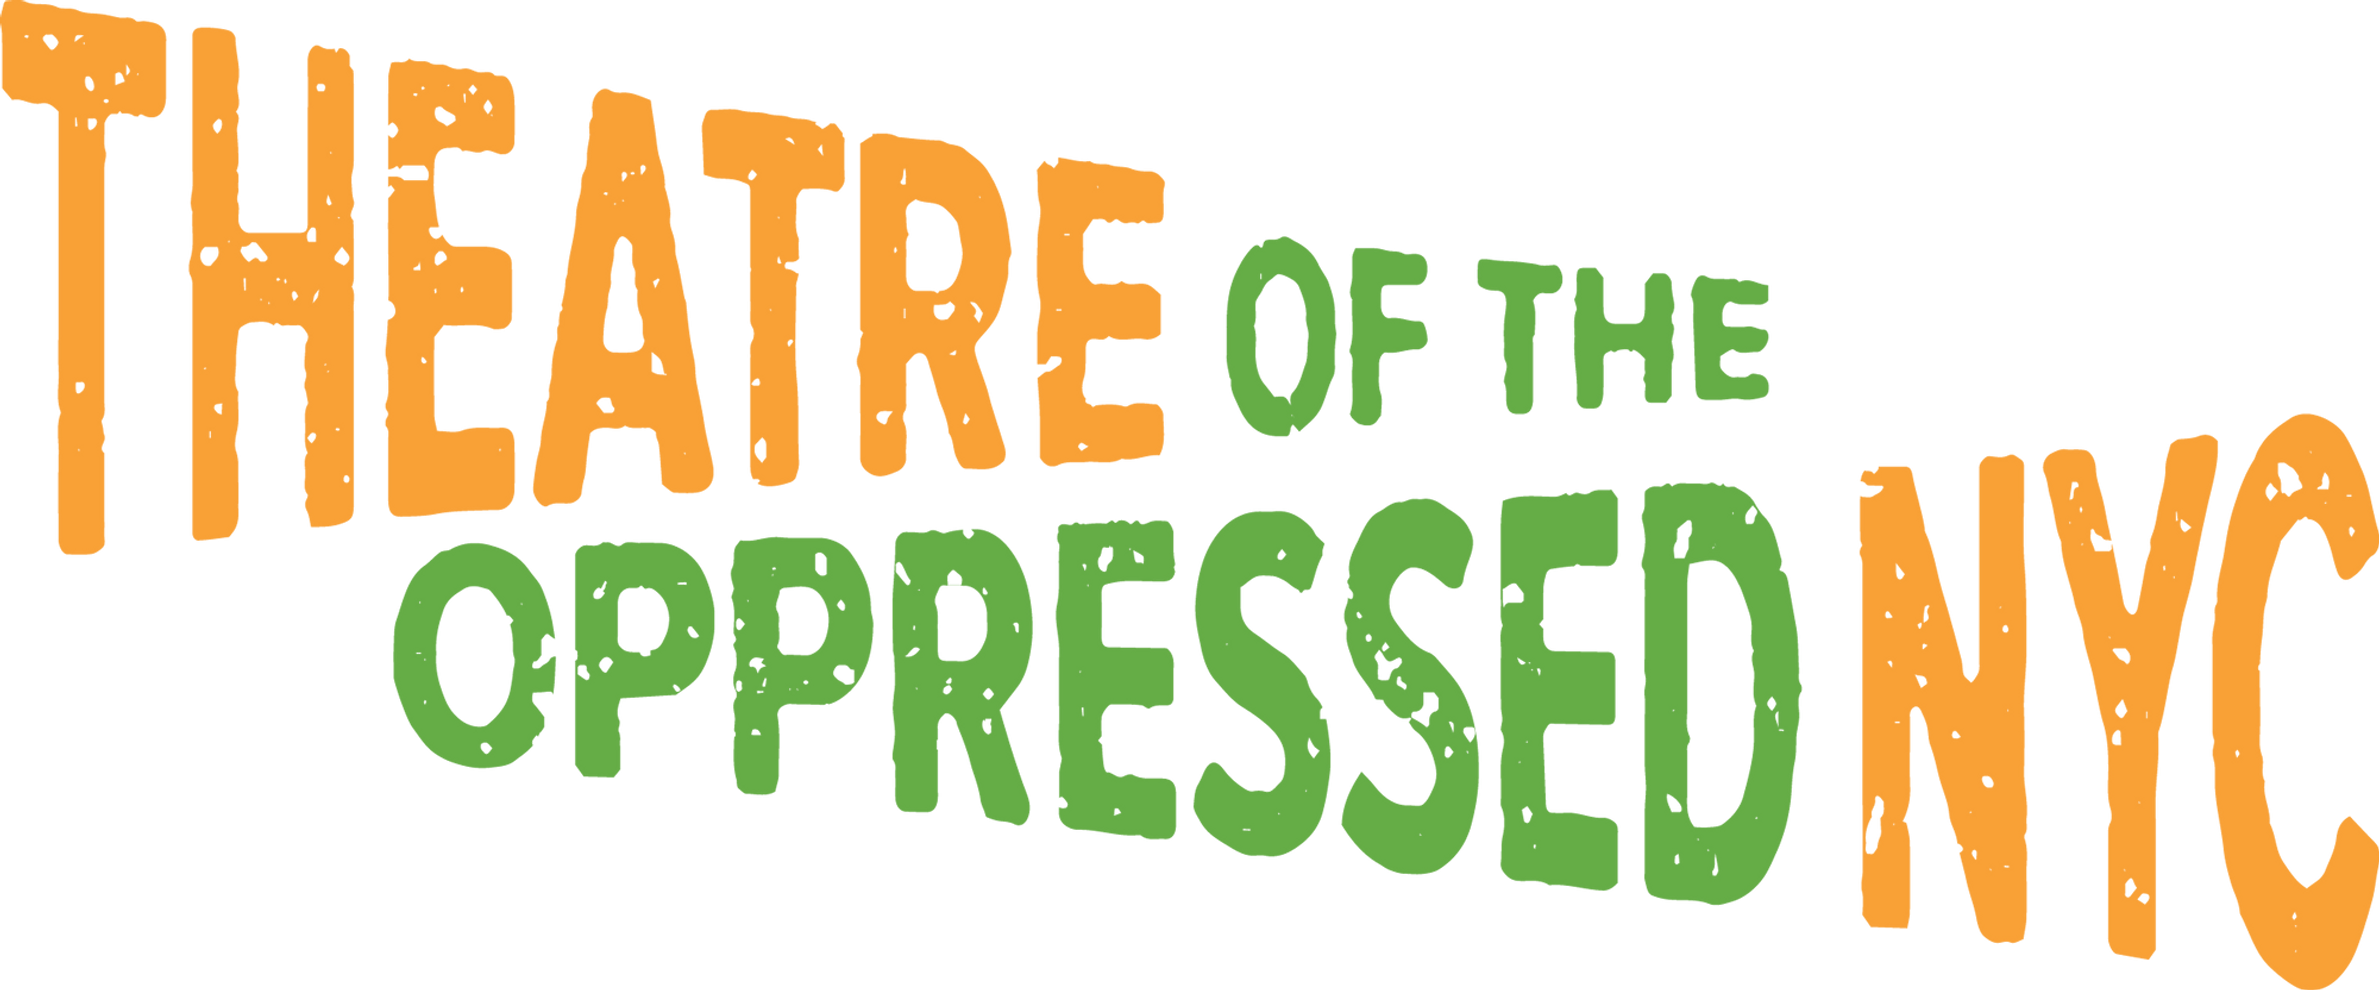 theater of the oppressed logohr.png